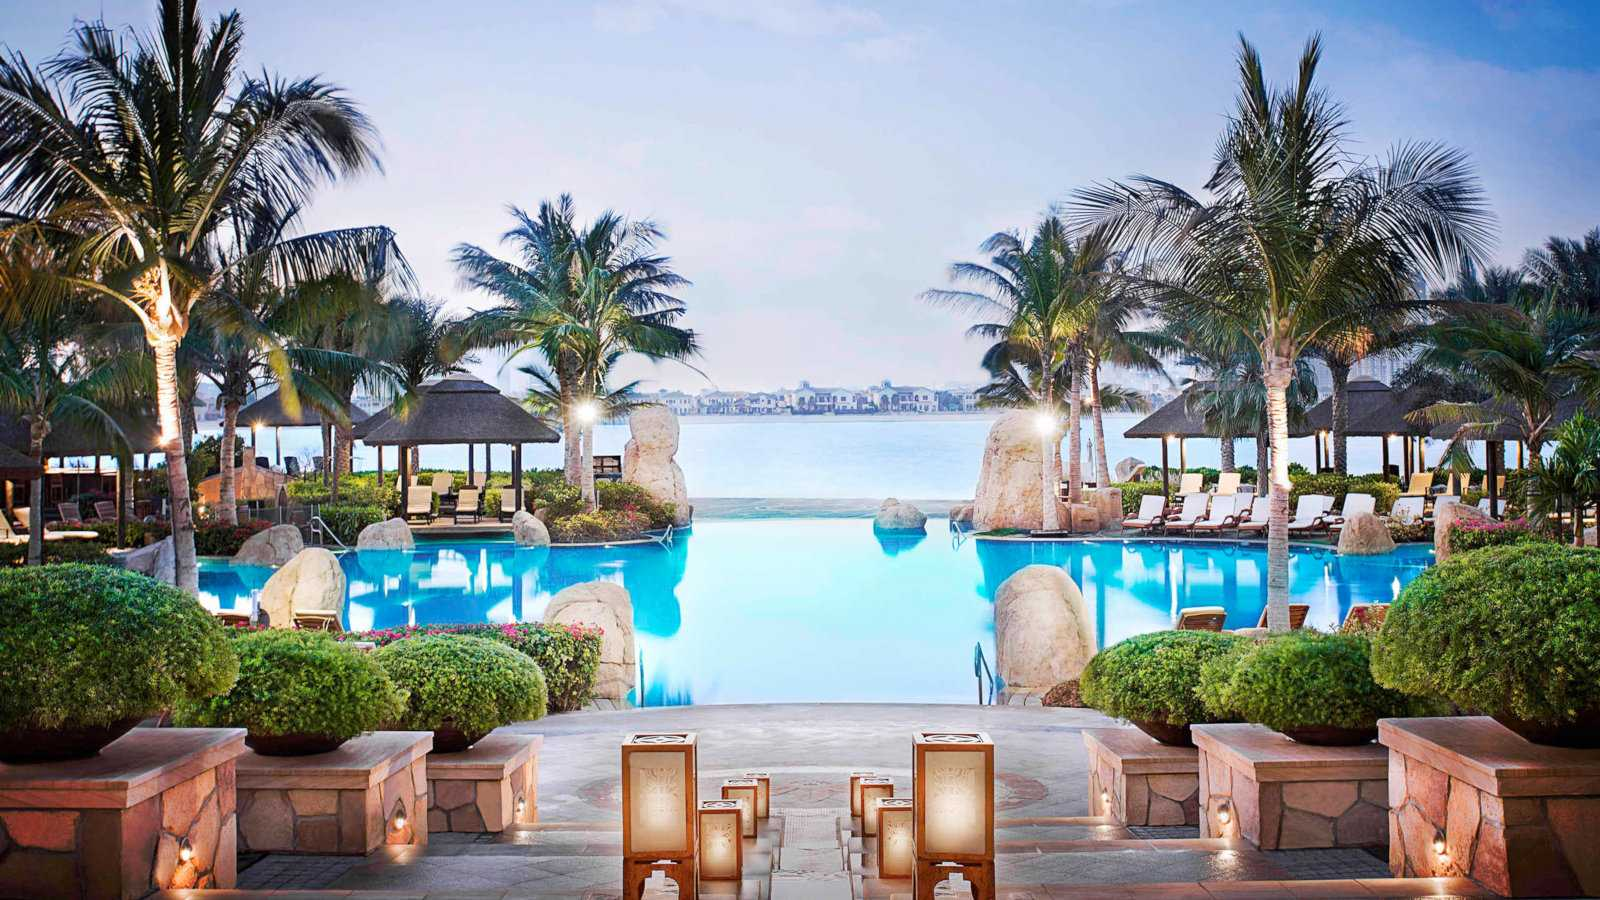 Stunning views over the lagoon-style pool at Sofitel the Palm, a gay friendly hotel in Dubai.